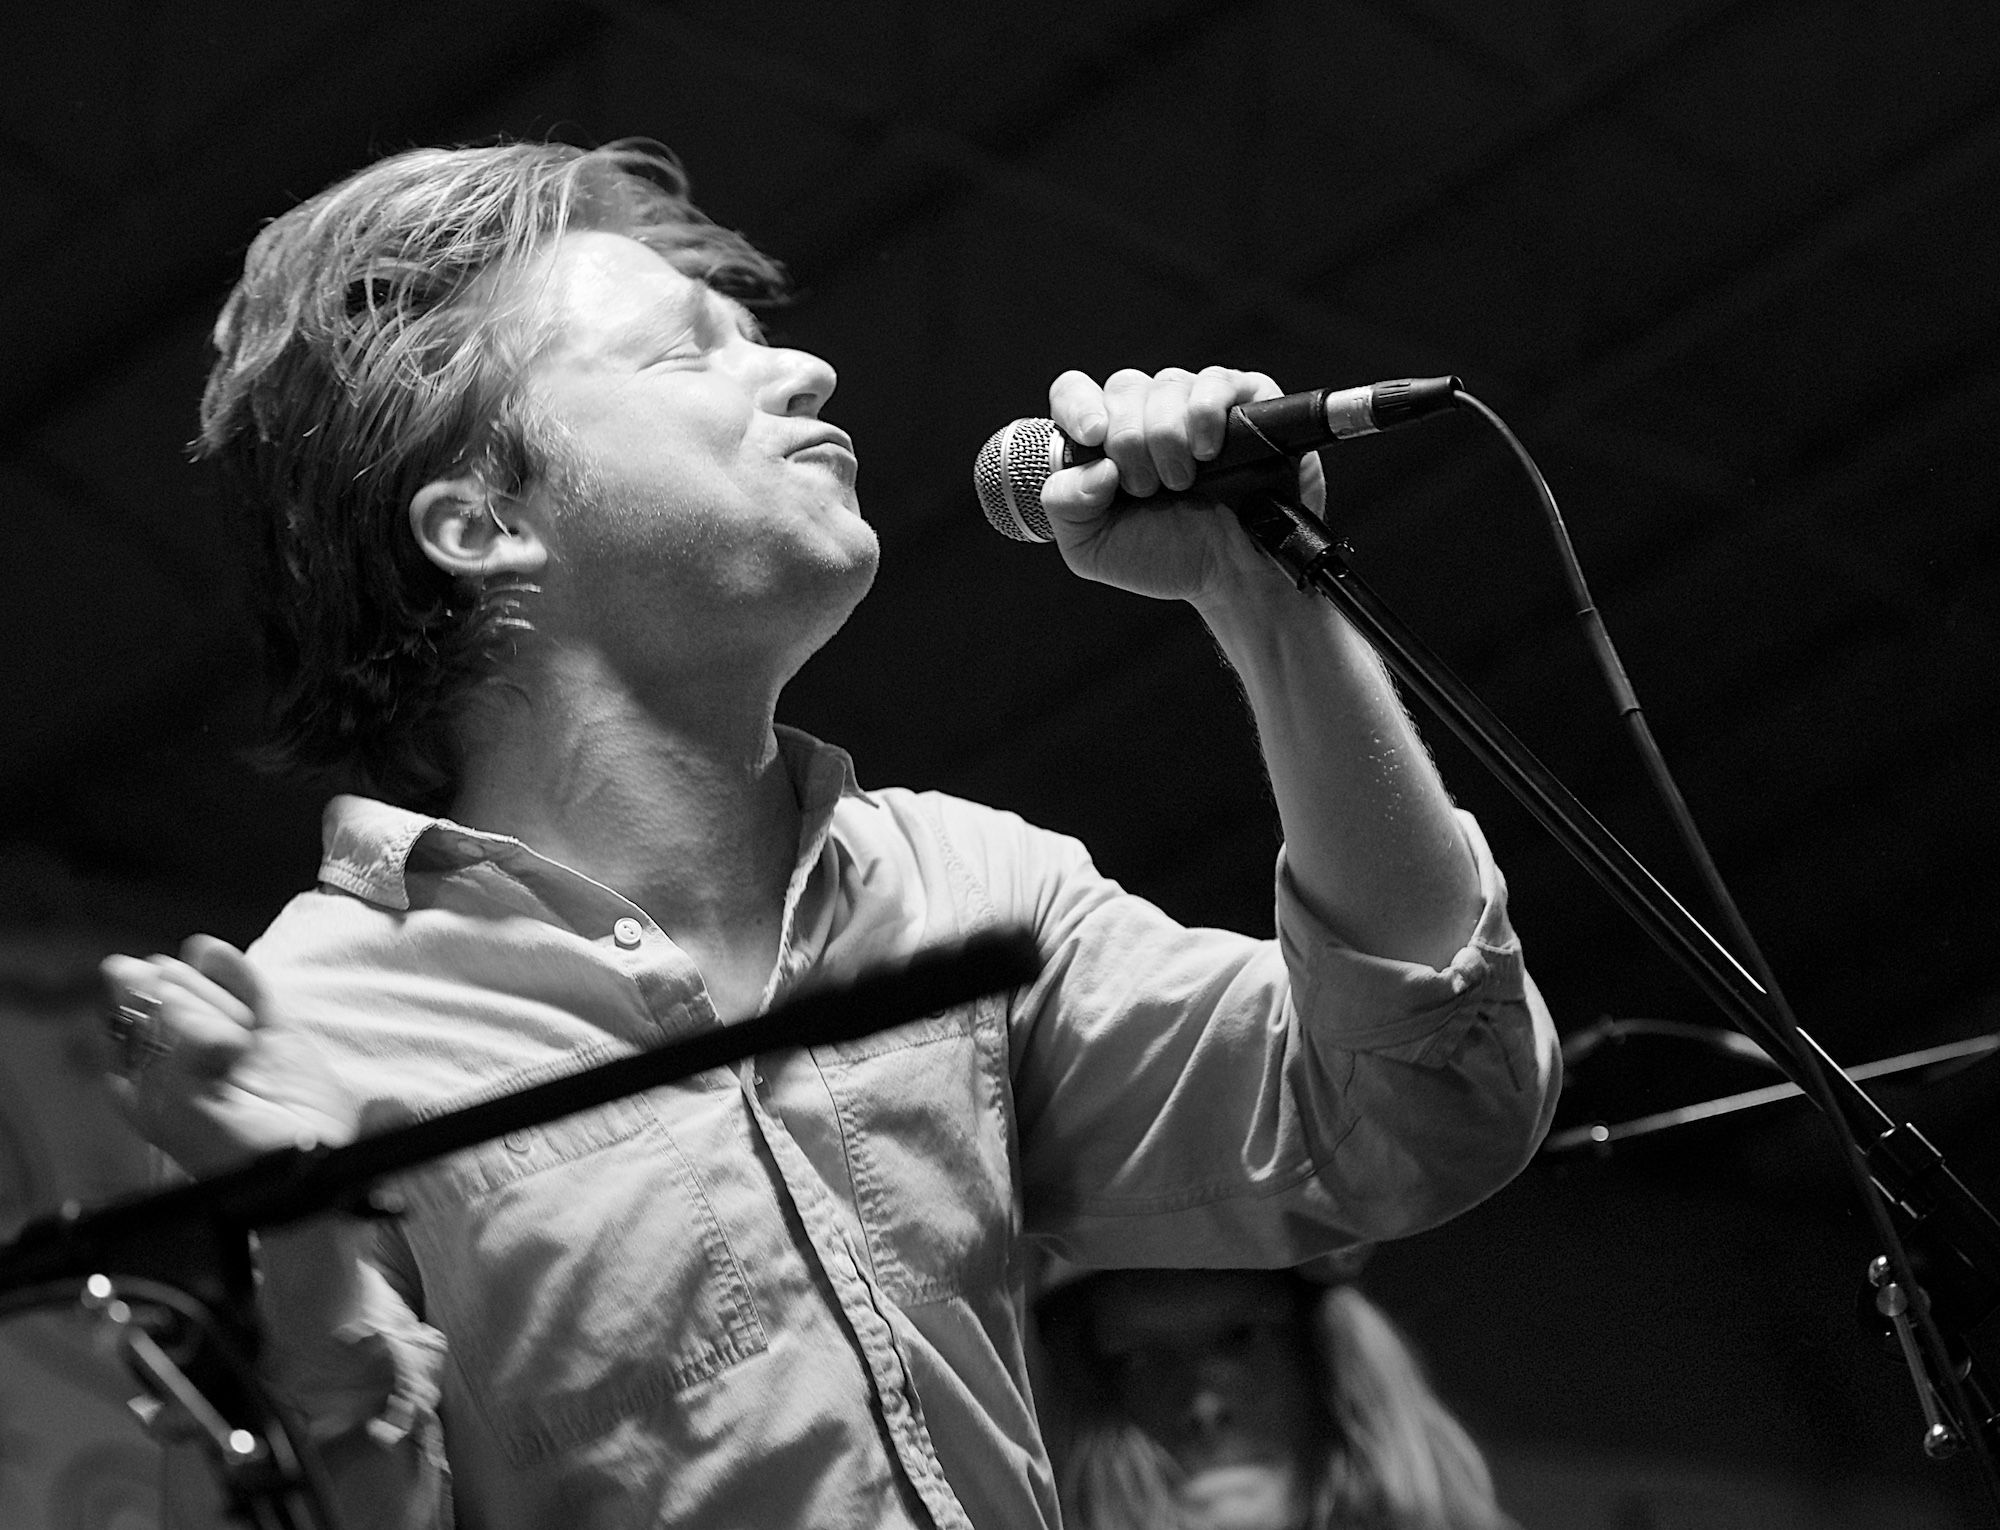 Matt Shultz performs with Cage the Elephant at Cactus Music. November 1, 2013